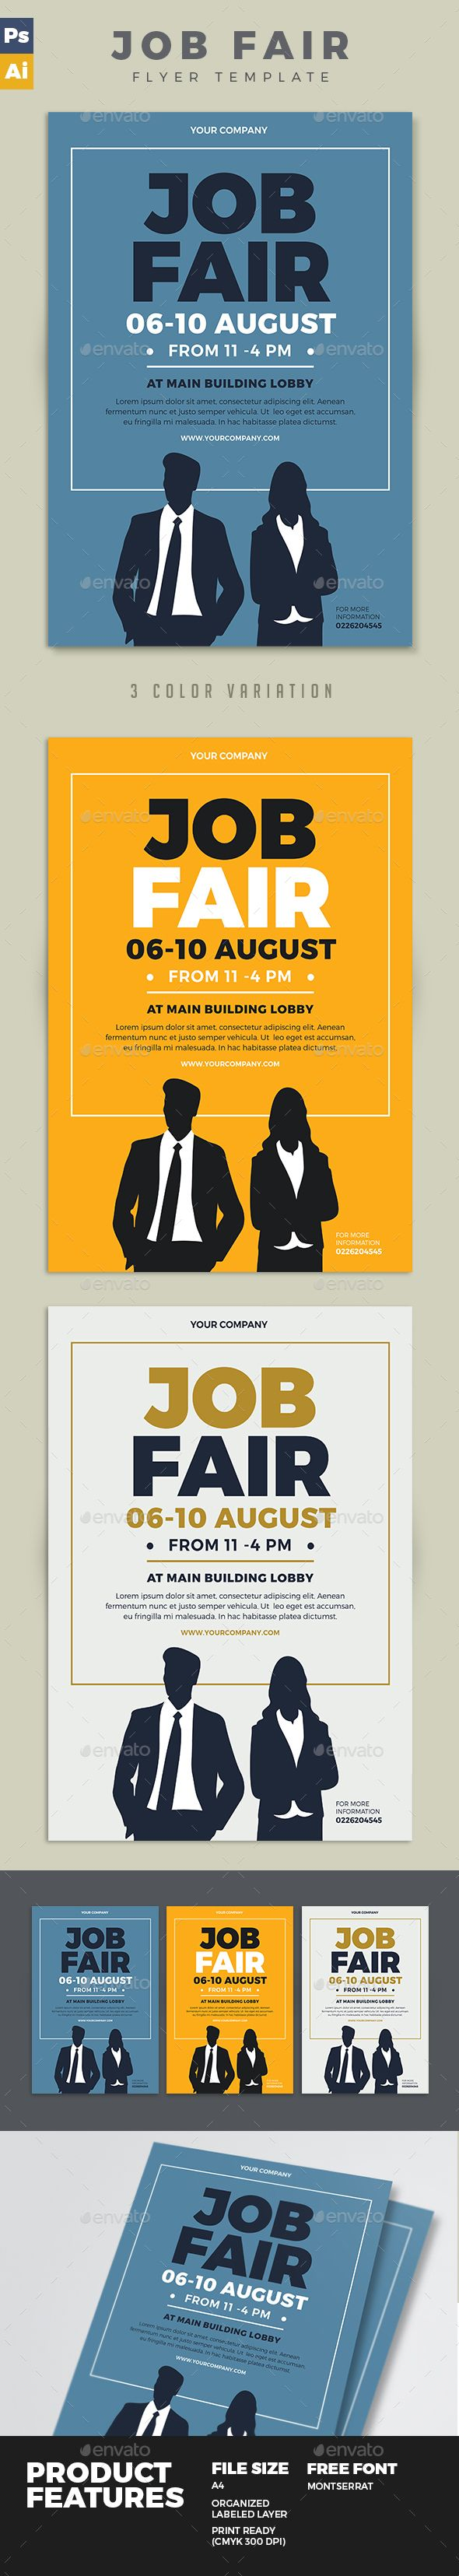 Poster design event - Job Fair Flyer